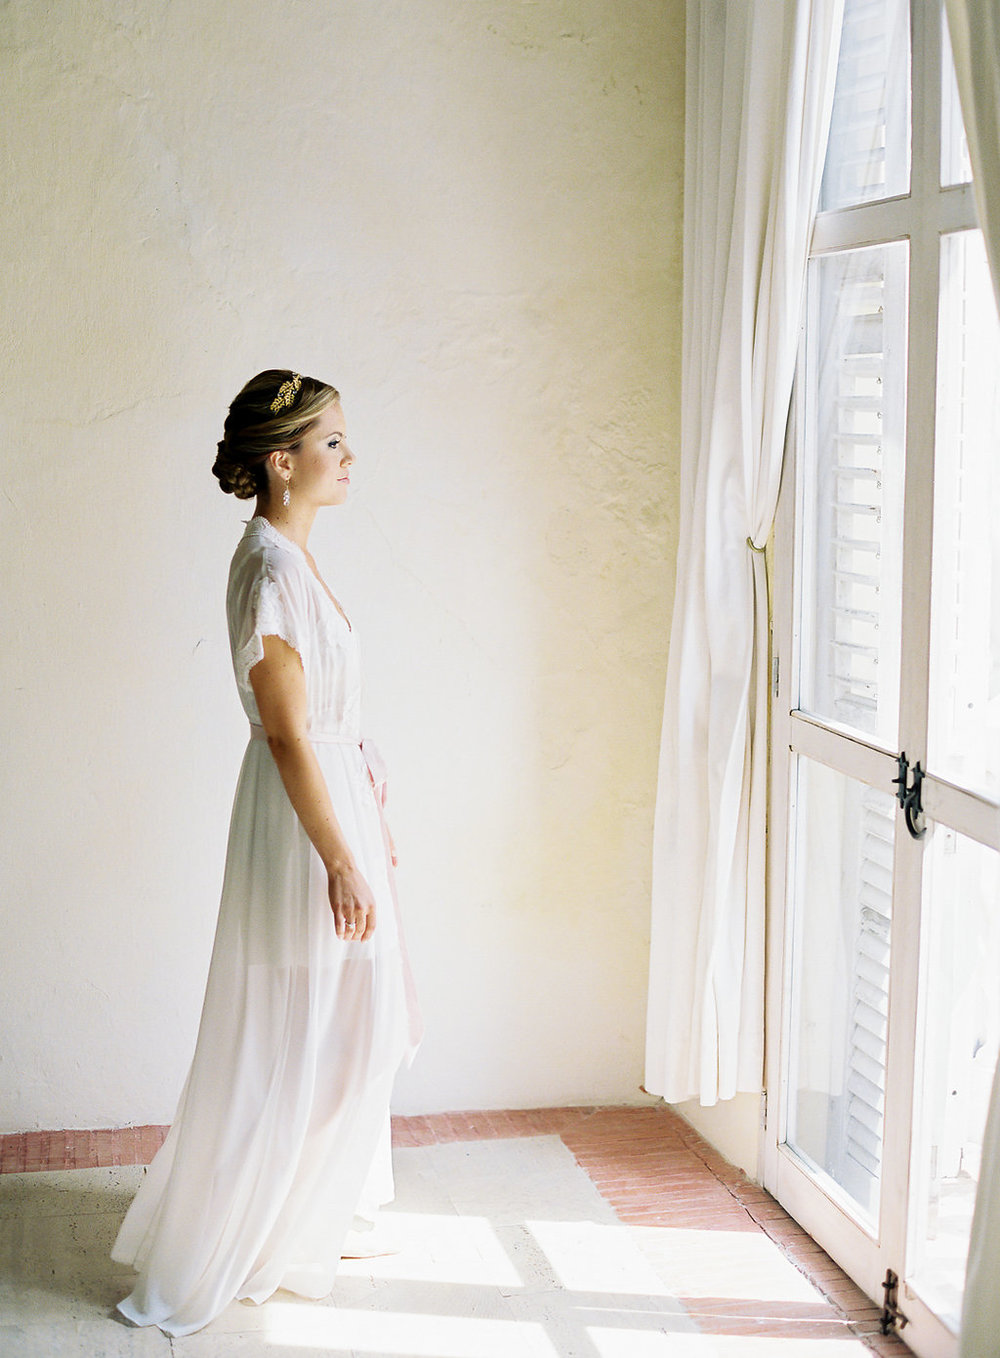 Fine art film photographer photography wedding engagement washington DC cartegena columbia destination modern bride inspiration inspired classic timeless california ny photos styling travel dress